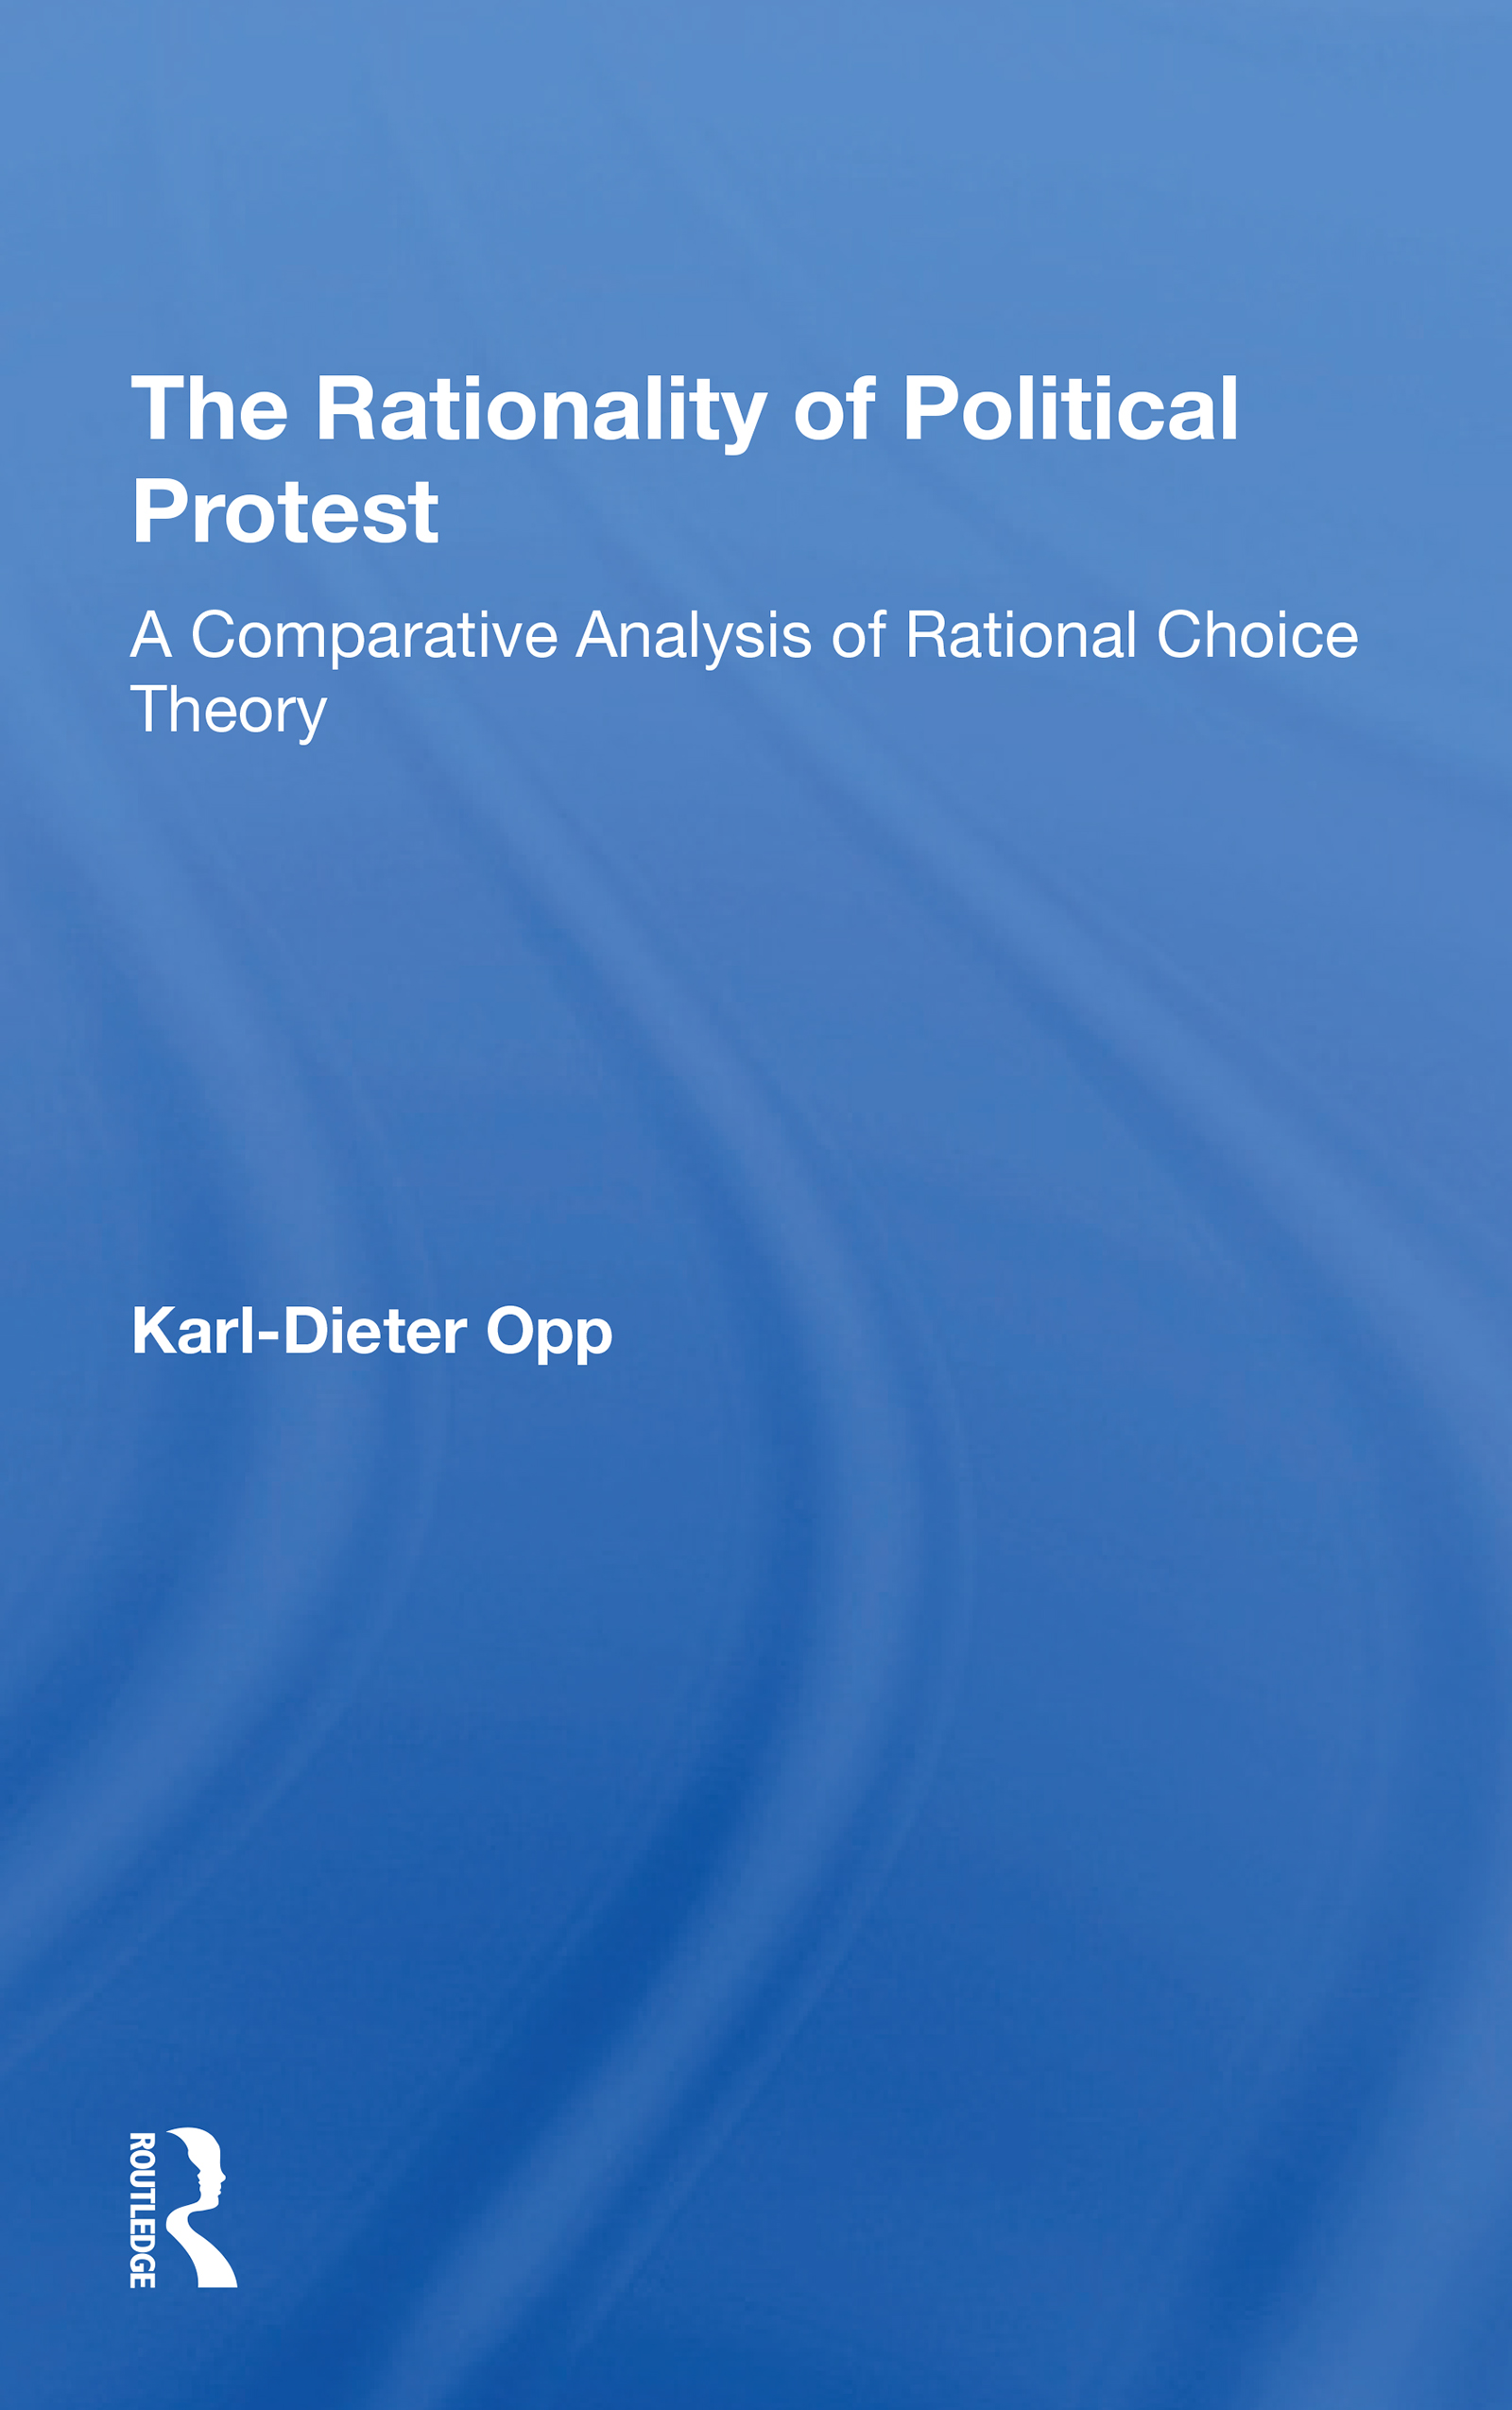 Demographic Variables and Political Protest                      1